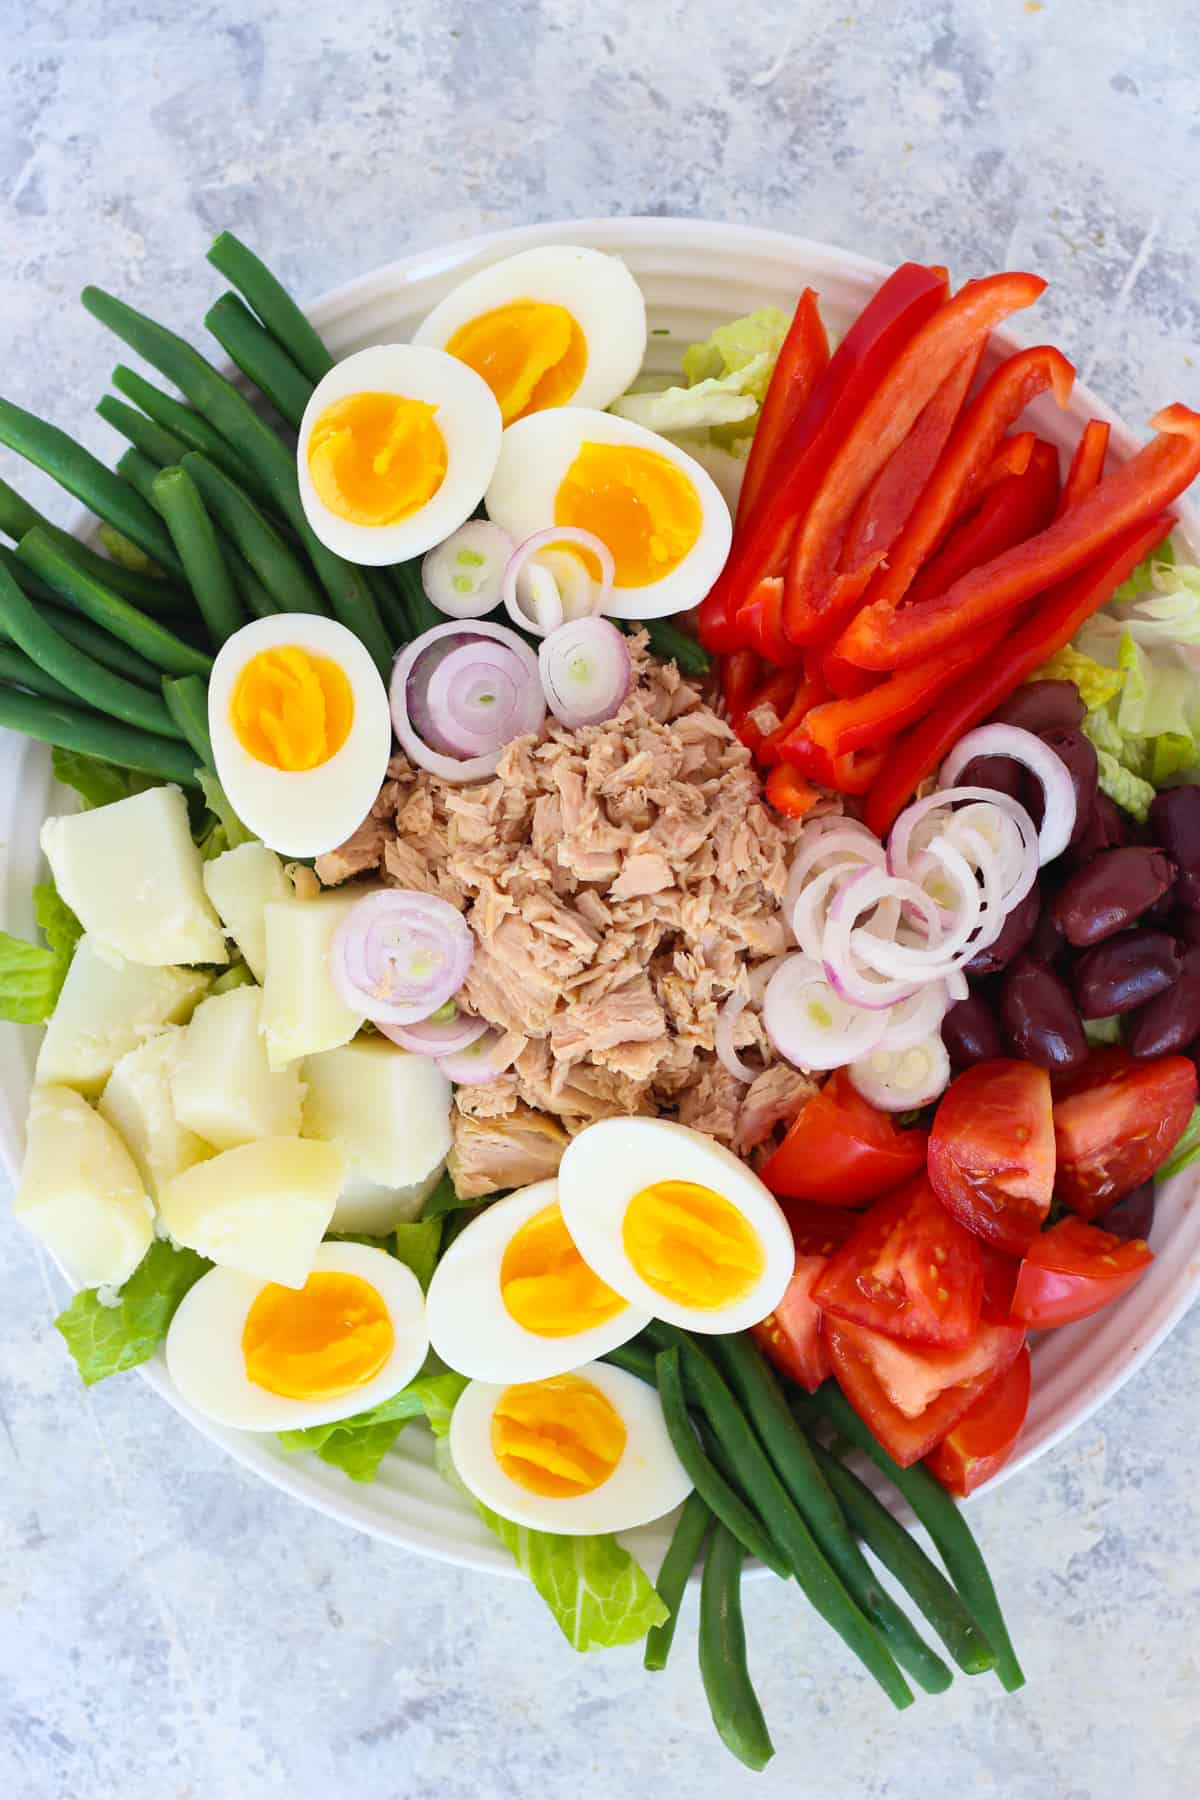 Nicoise salad is a French salad that is composed. The ingredients are arranged beautifully on a bed of lettuce.